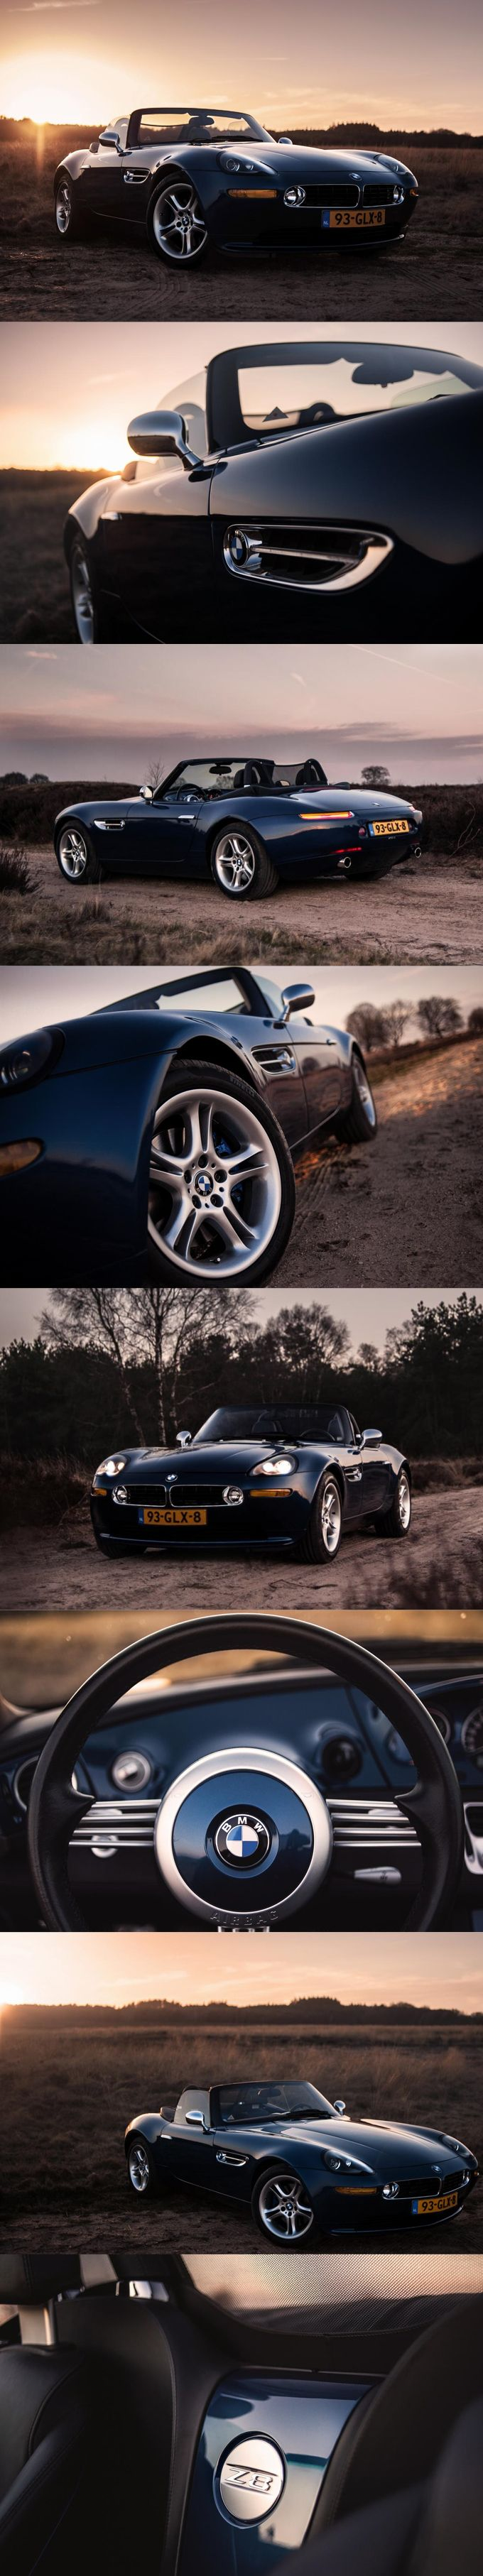 2001 BMW Z8 / 400hp 4.9l V8 / E52 / Henrik Fisker / Germany / blue / 17-396 / photo: Sander van der Linden / Autojunk.nl